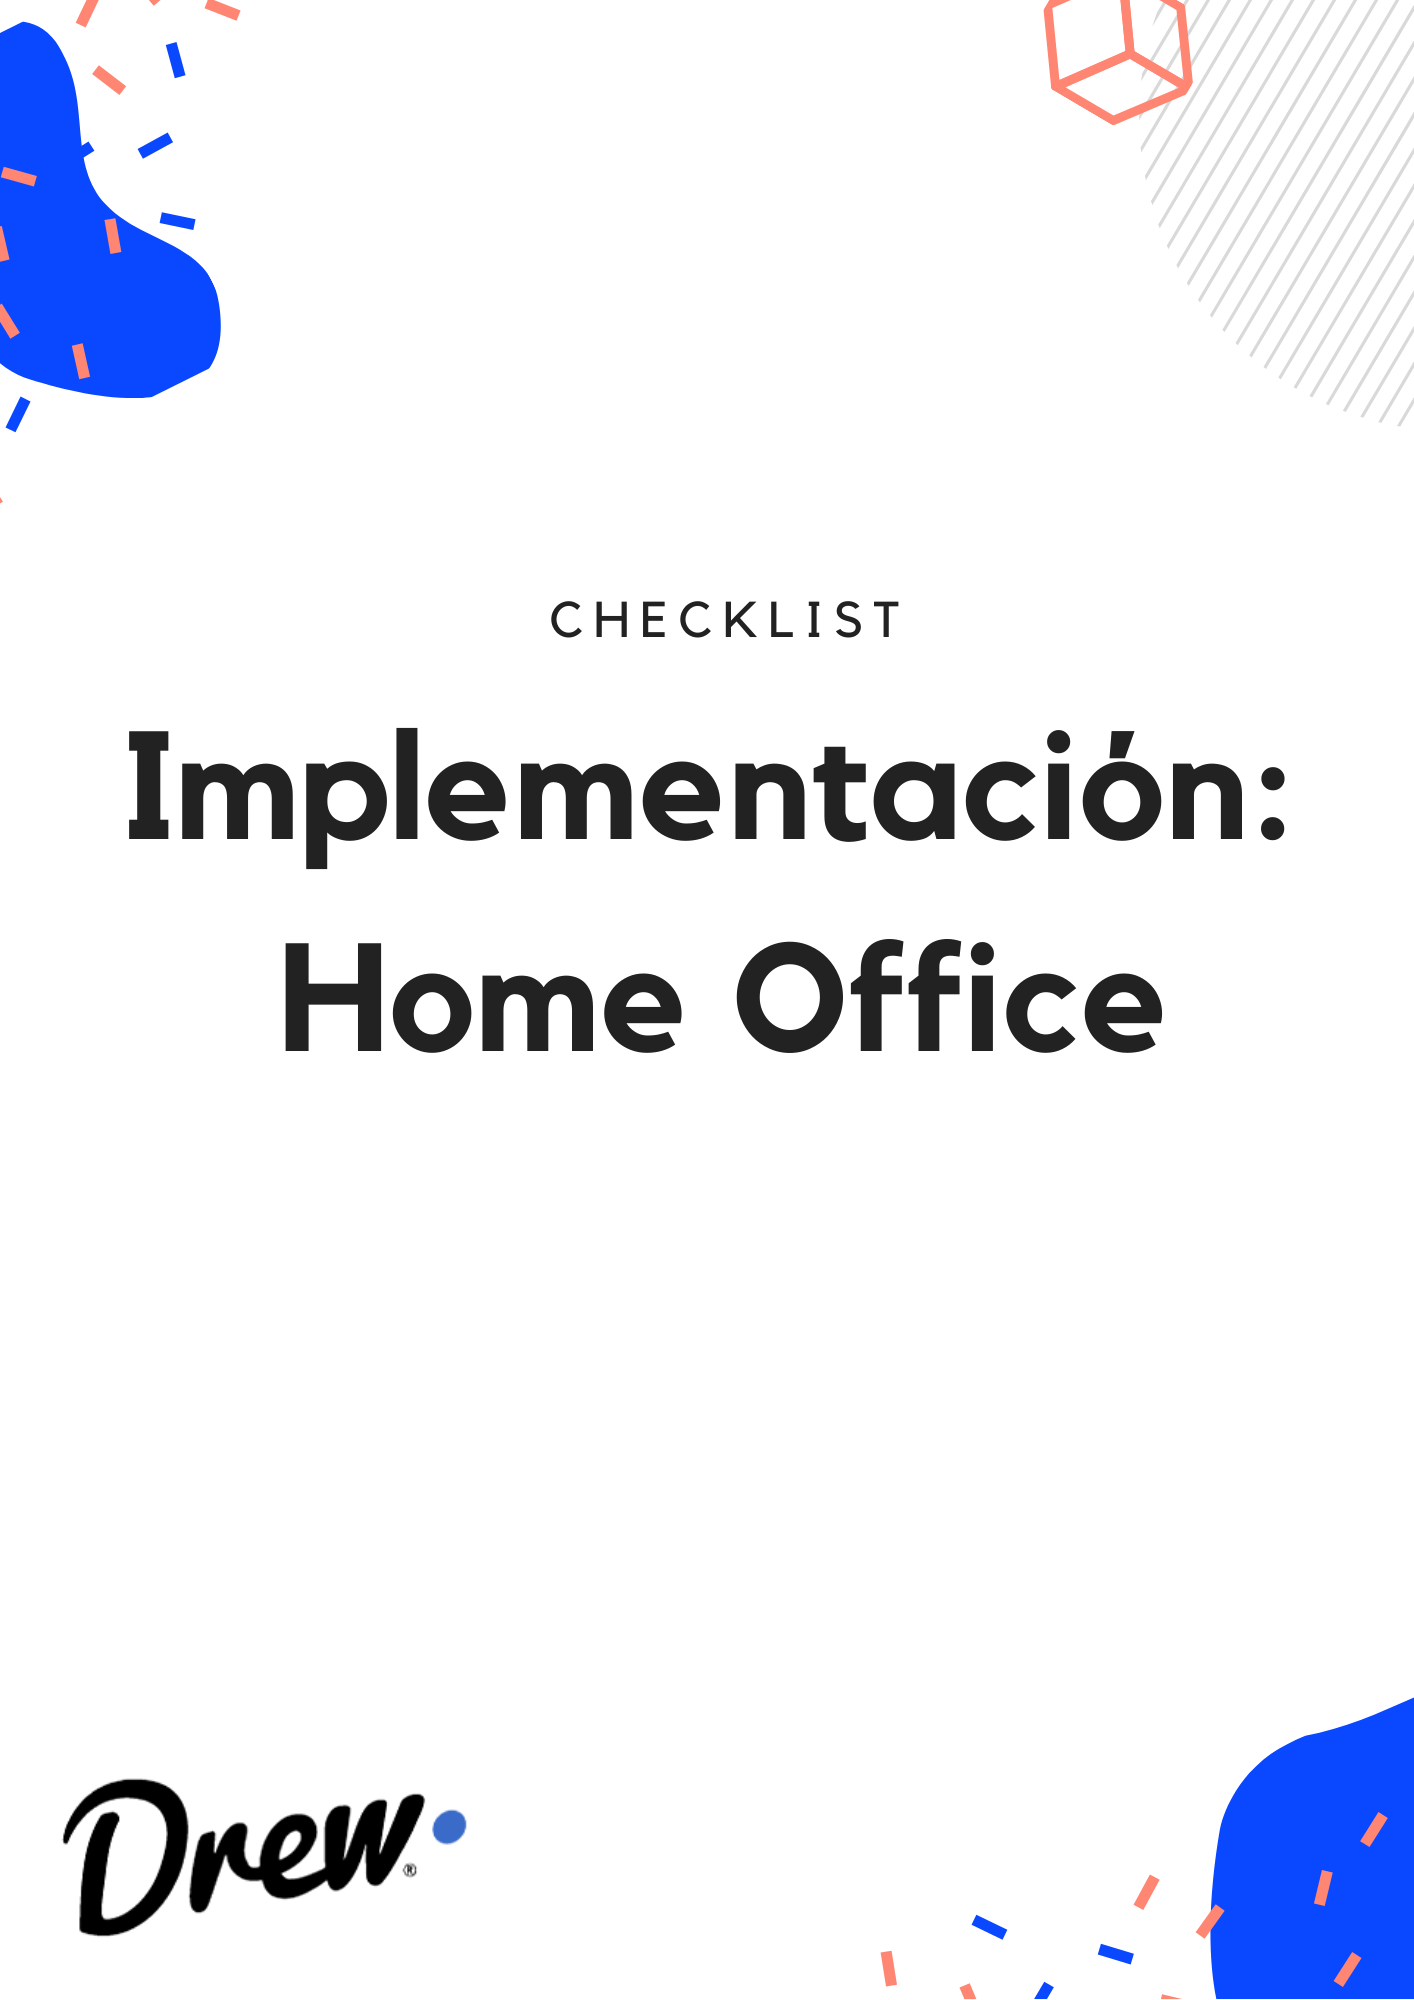 Checklist para implementar Home Office